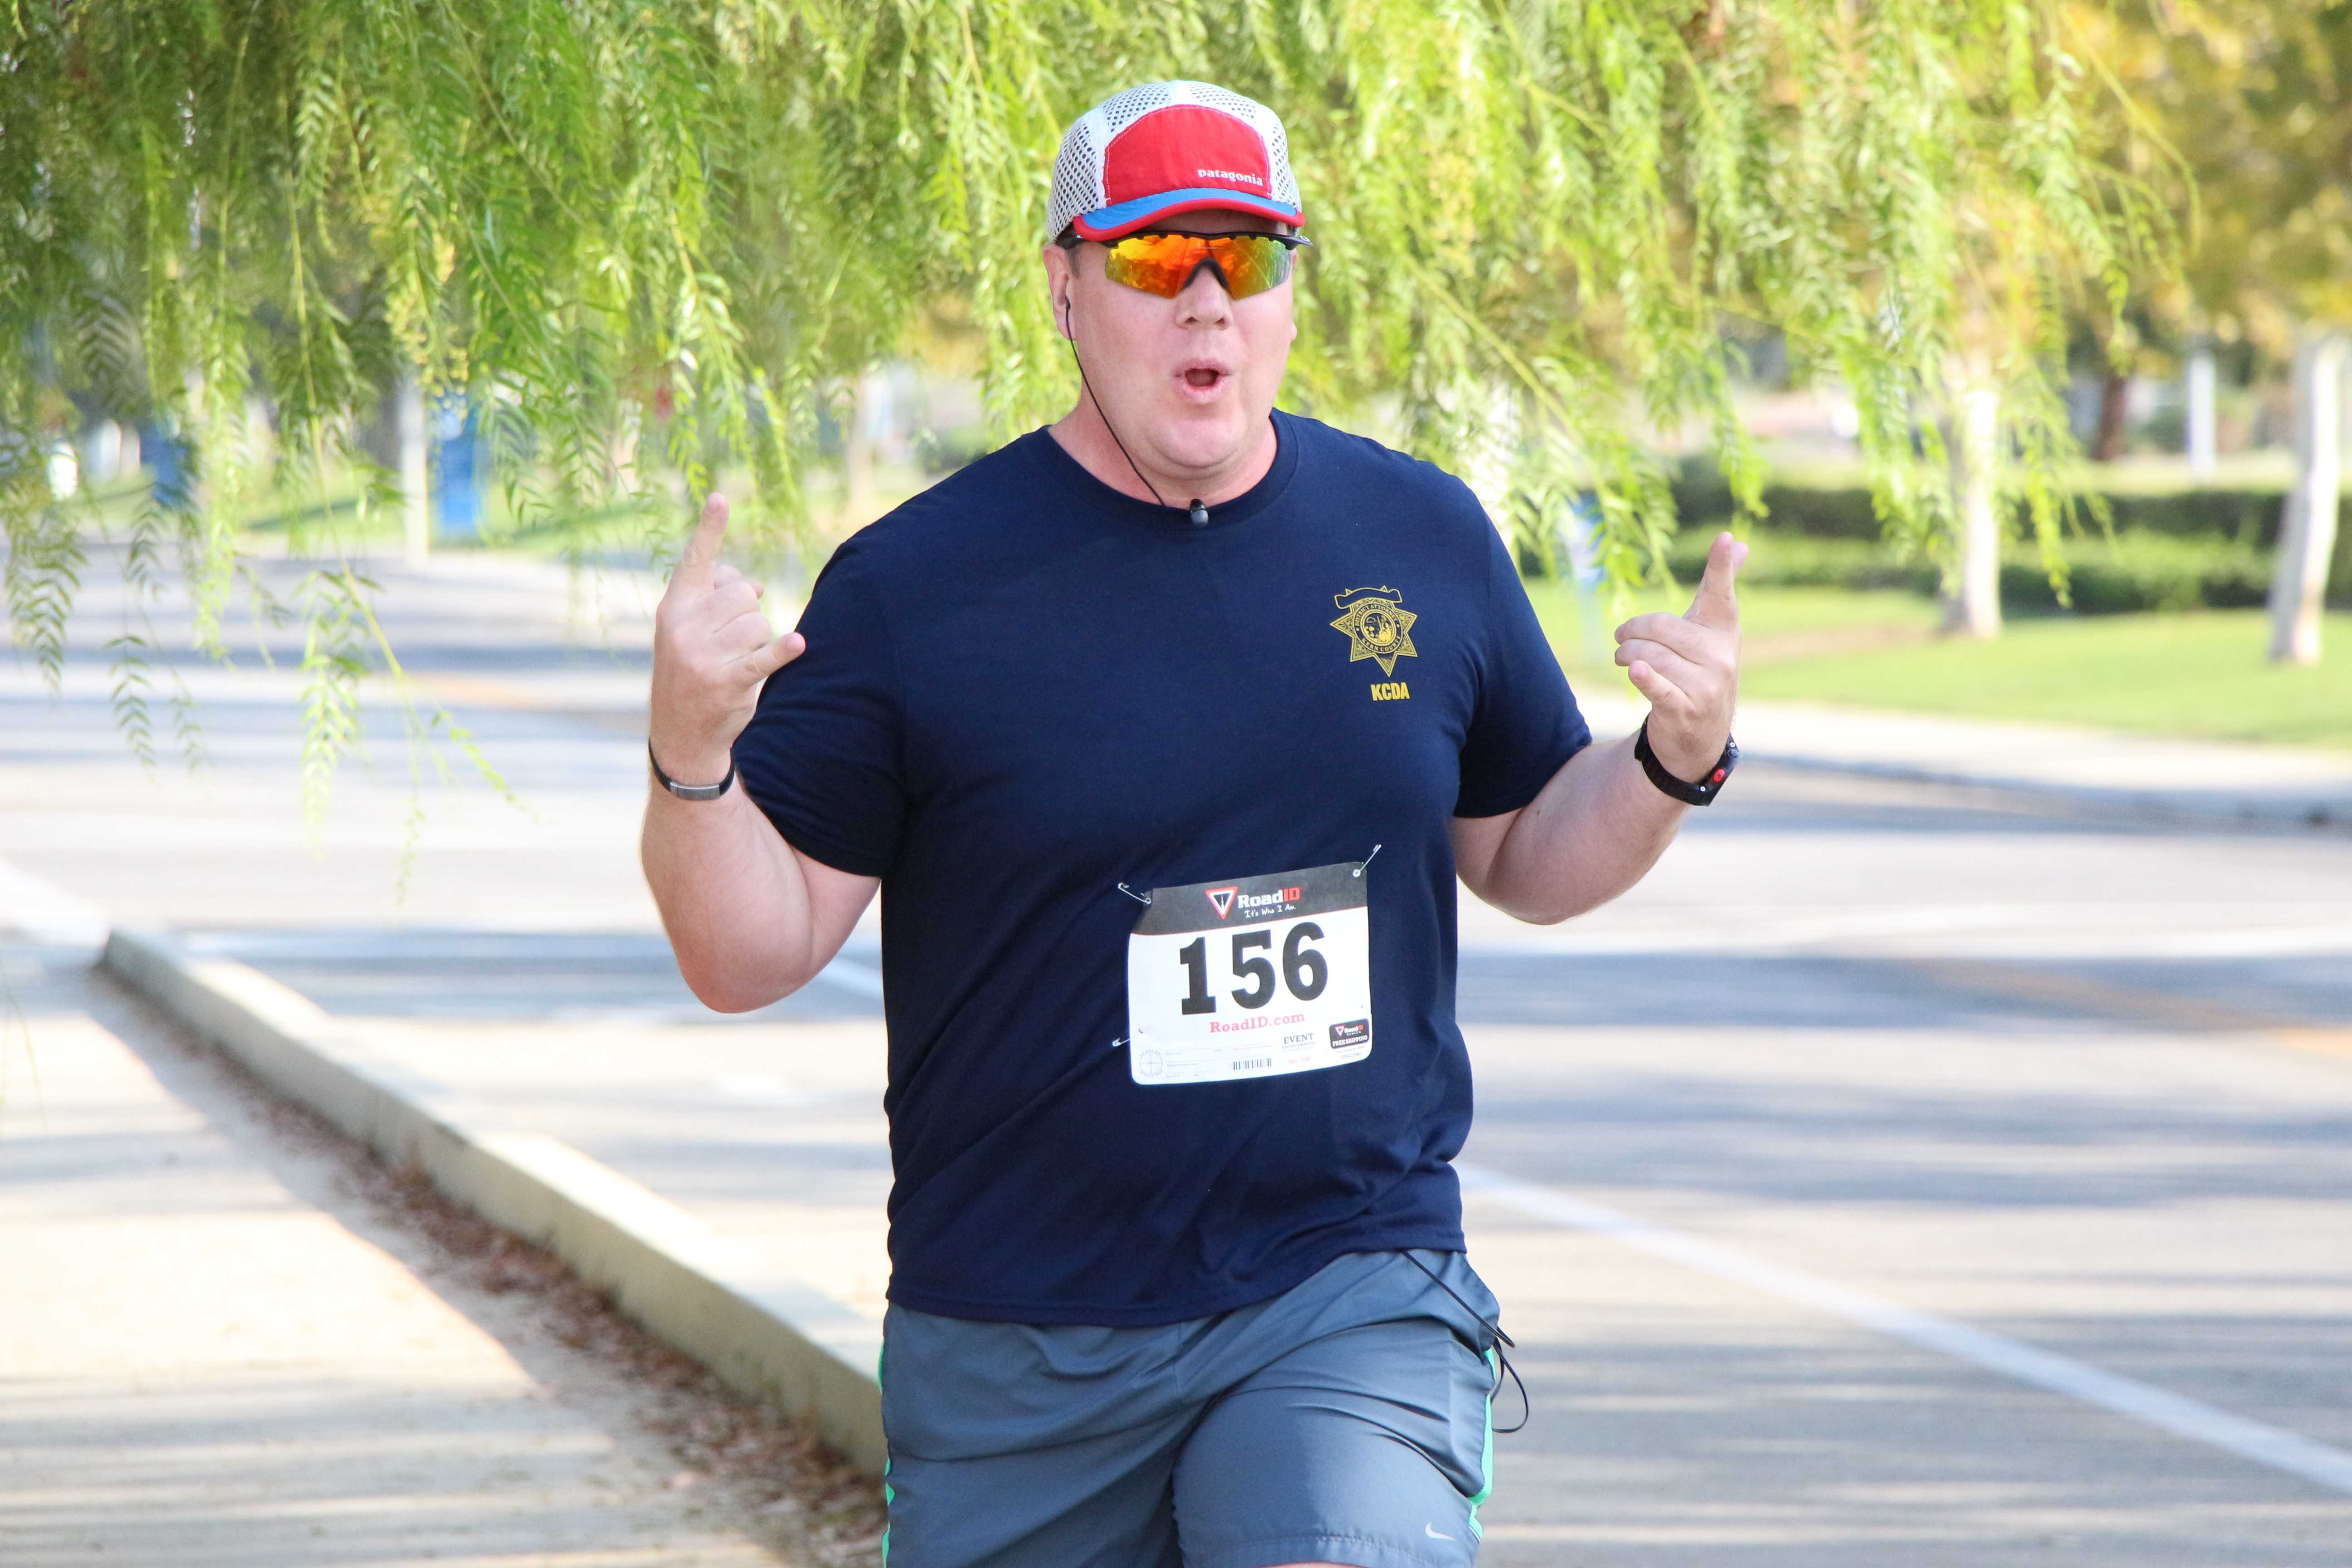 Brandon Stallings nearing the finish line of the Bring out the Bling 5K Fun Run at CSUB on Saturday.  Photo by Alejandra Flores/ The Runner